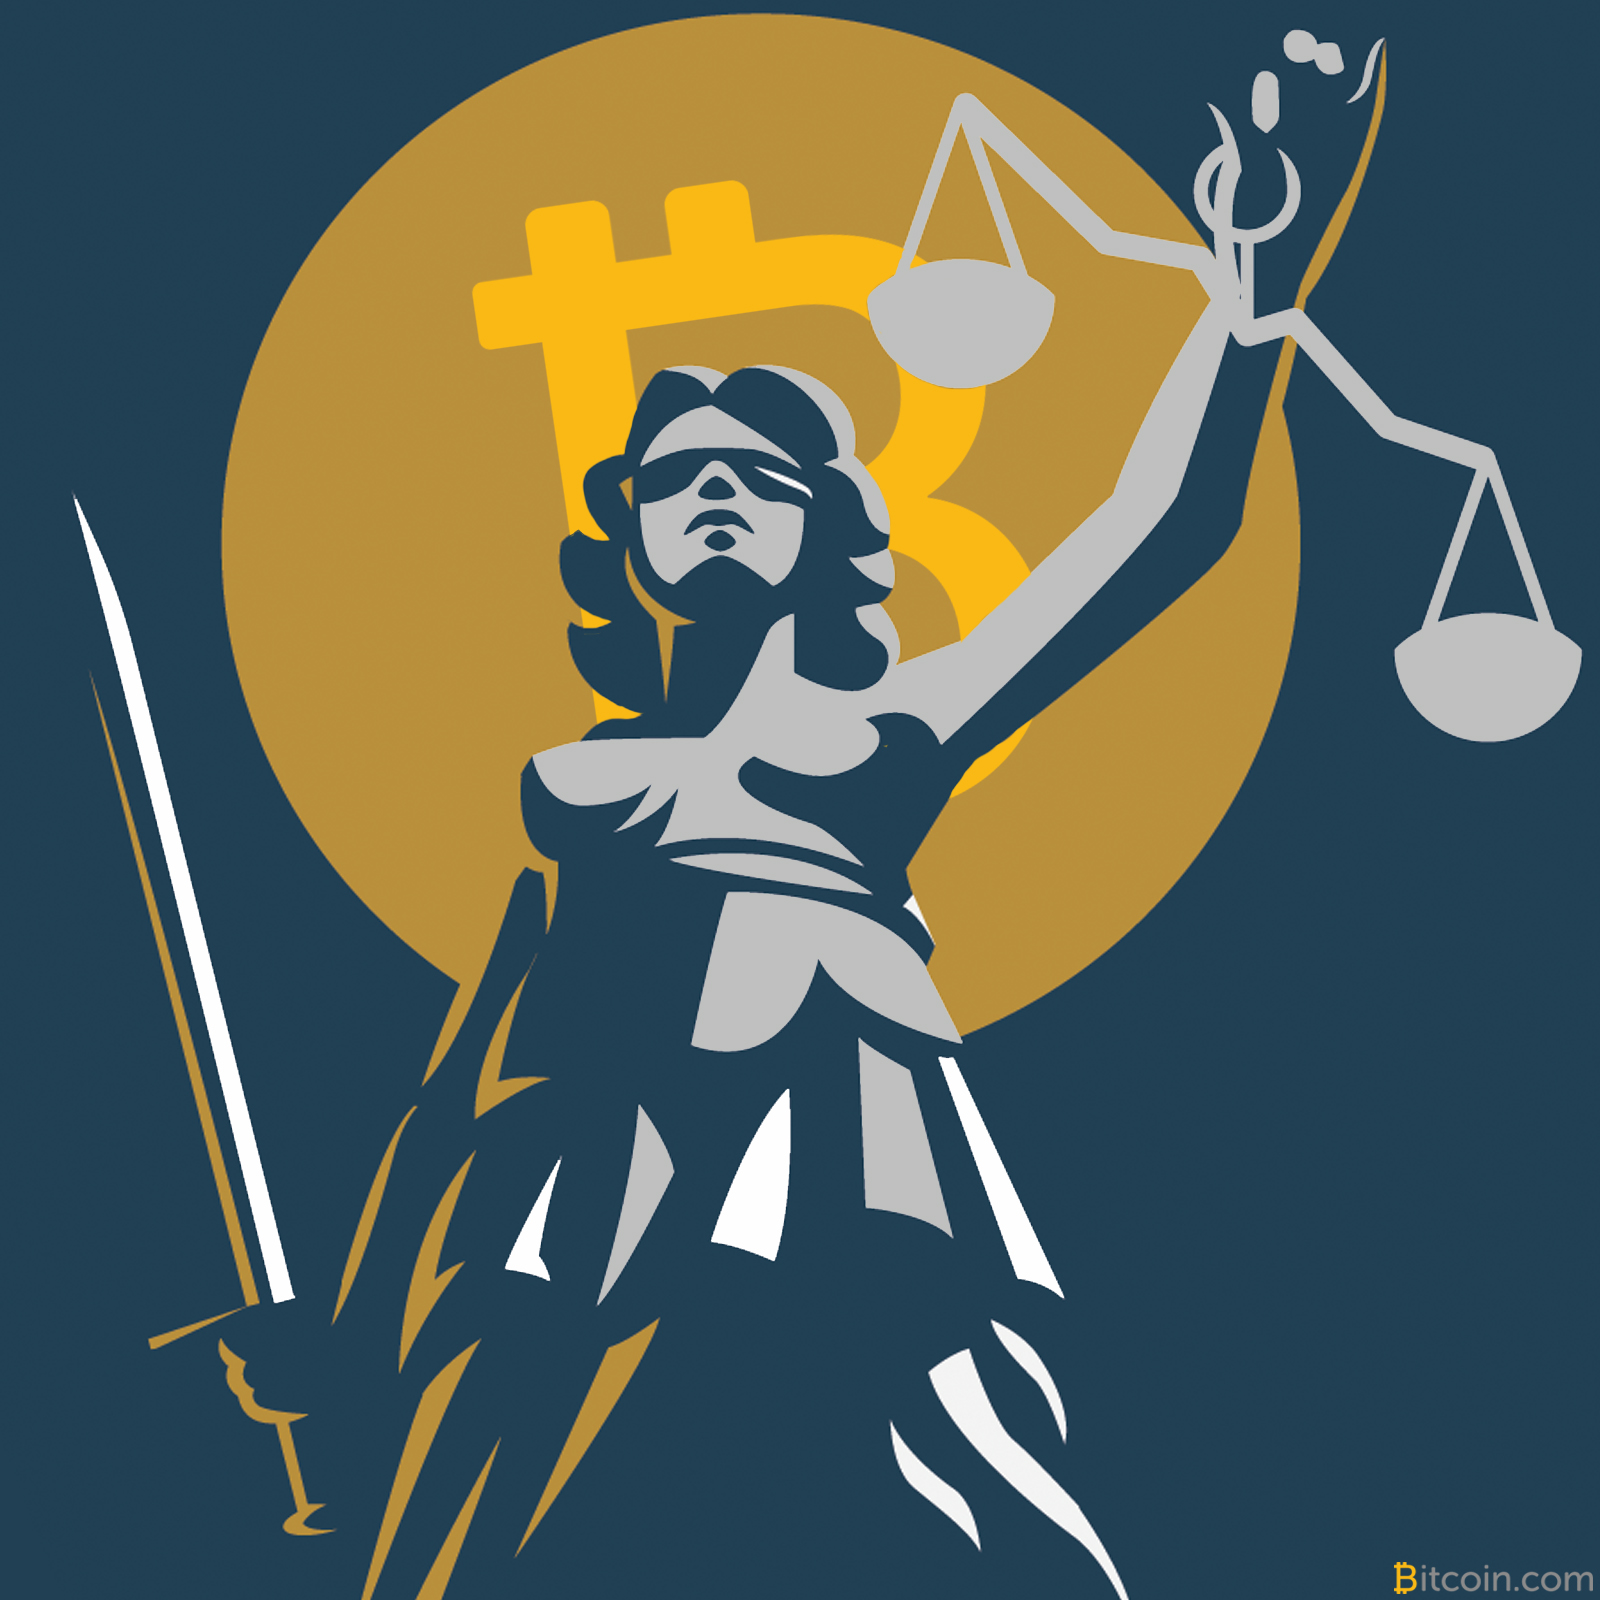 Espinoza Ruling Reversed, Florida Appeals Court Defines Bitcoin as Money